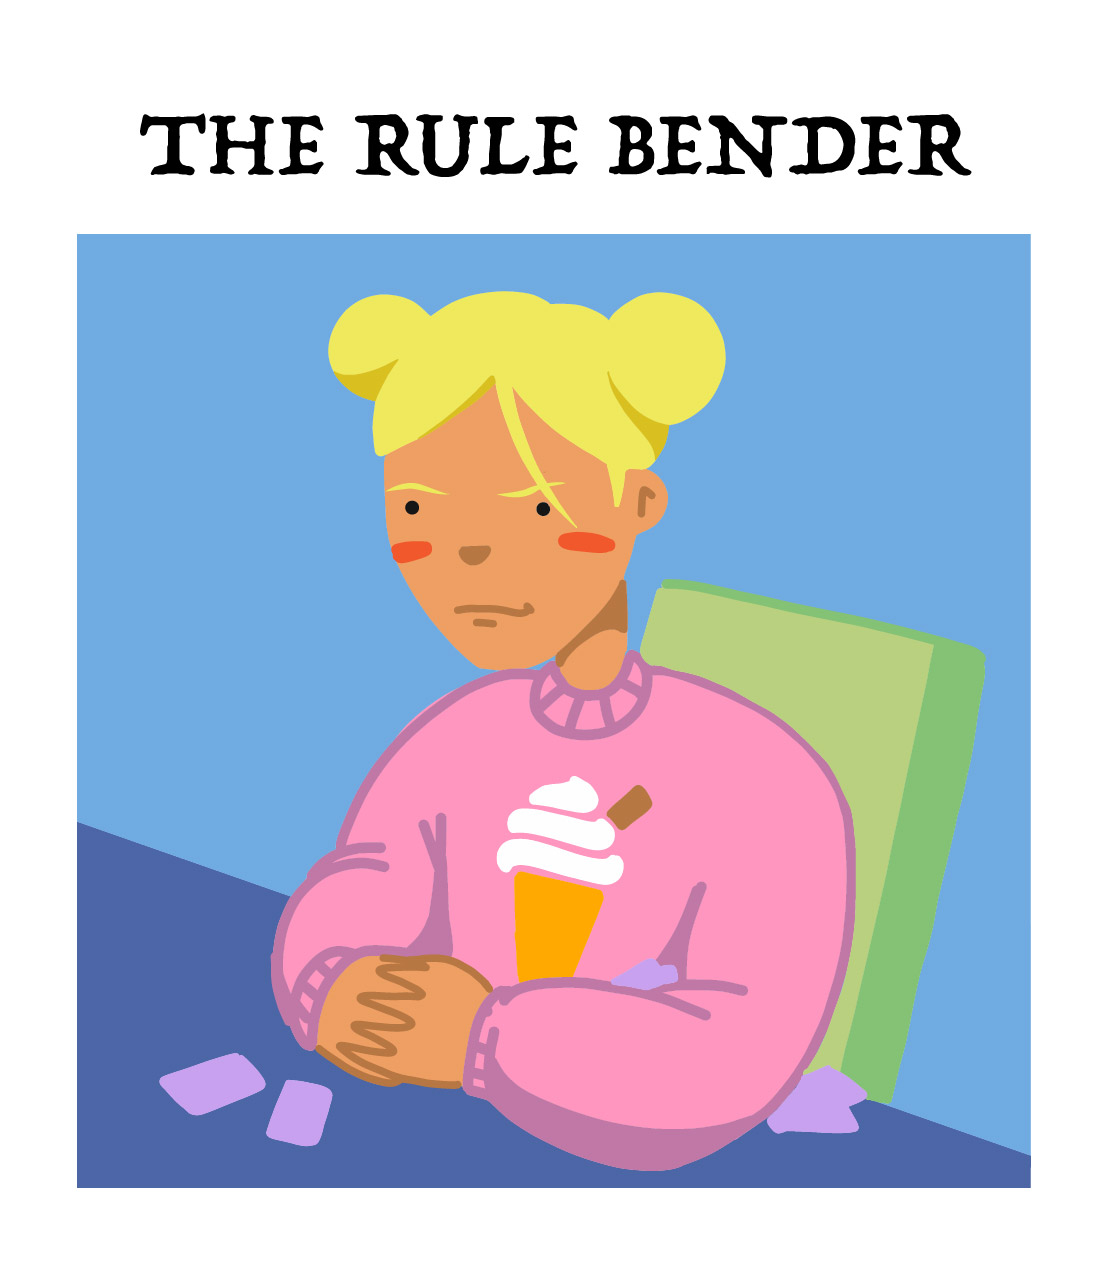 the rule bender, type one of the board game players